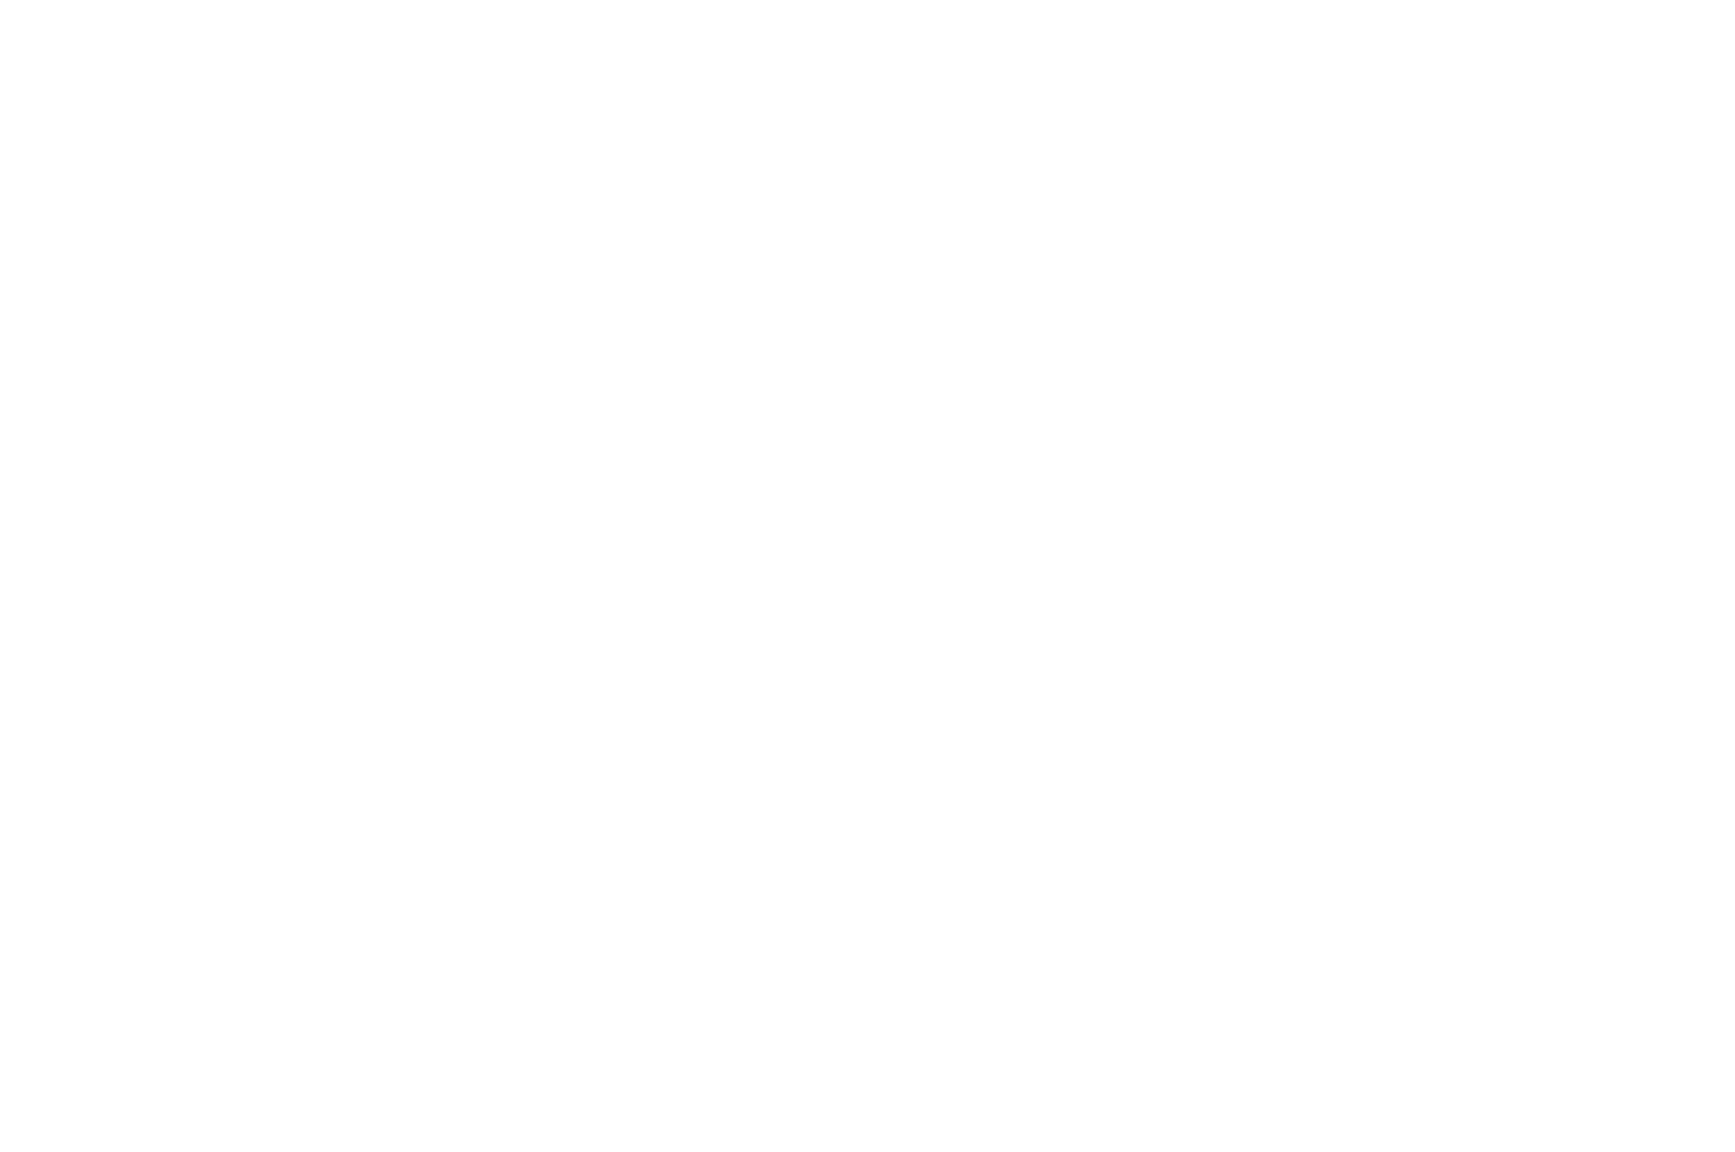 BEST WRITING - TOP INDIE FILM AWARDS - 2018.png